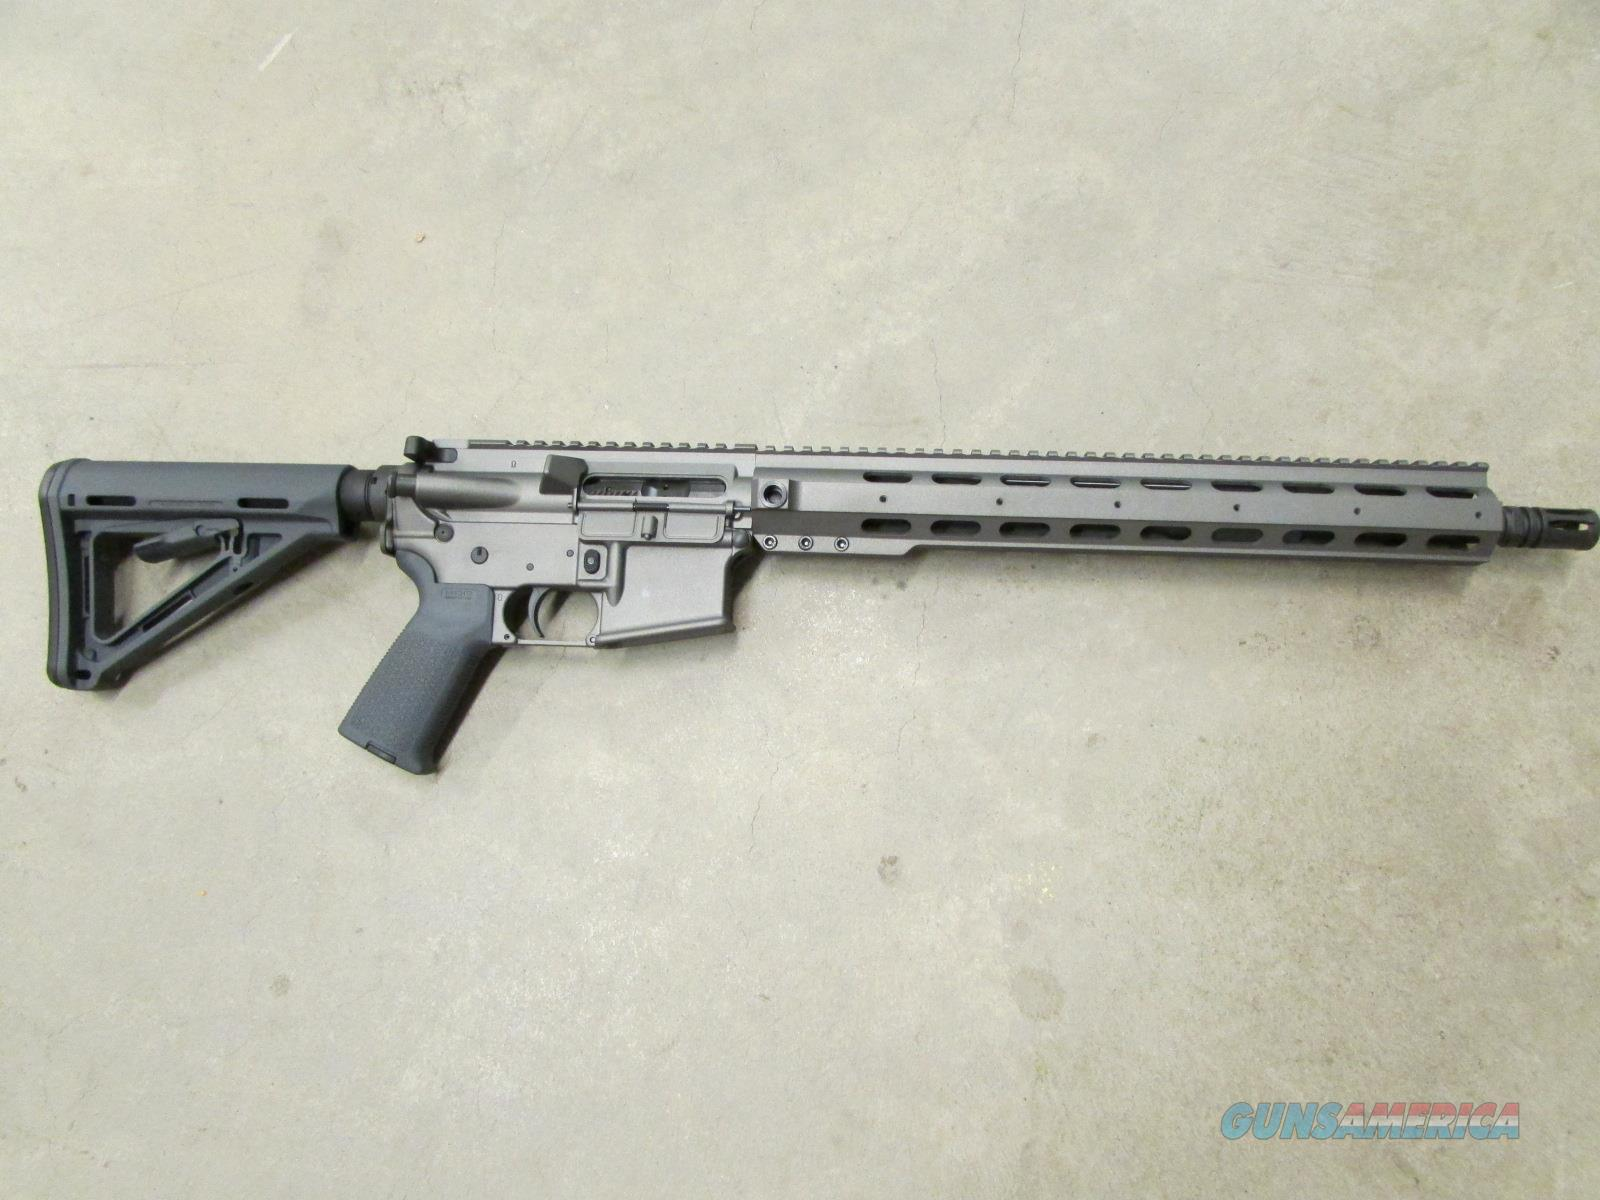 "ANDERSON COMPLETE AR-15 TUNGSTEN GRAY CERAKOTE 5.56 NATO 16""  Guns > Rifles > AR-15 Rifles - Small Manufacturers > Complete Rifle"